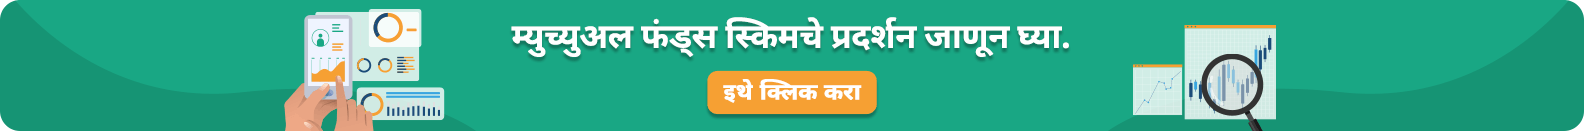 Know Performance of Mutual Fund Schemes